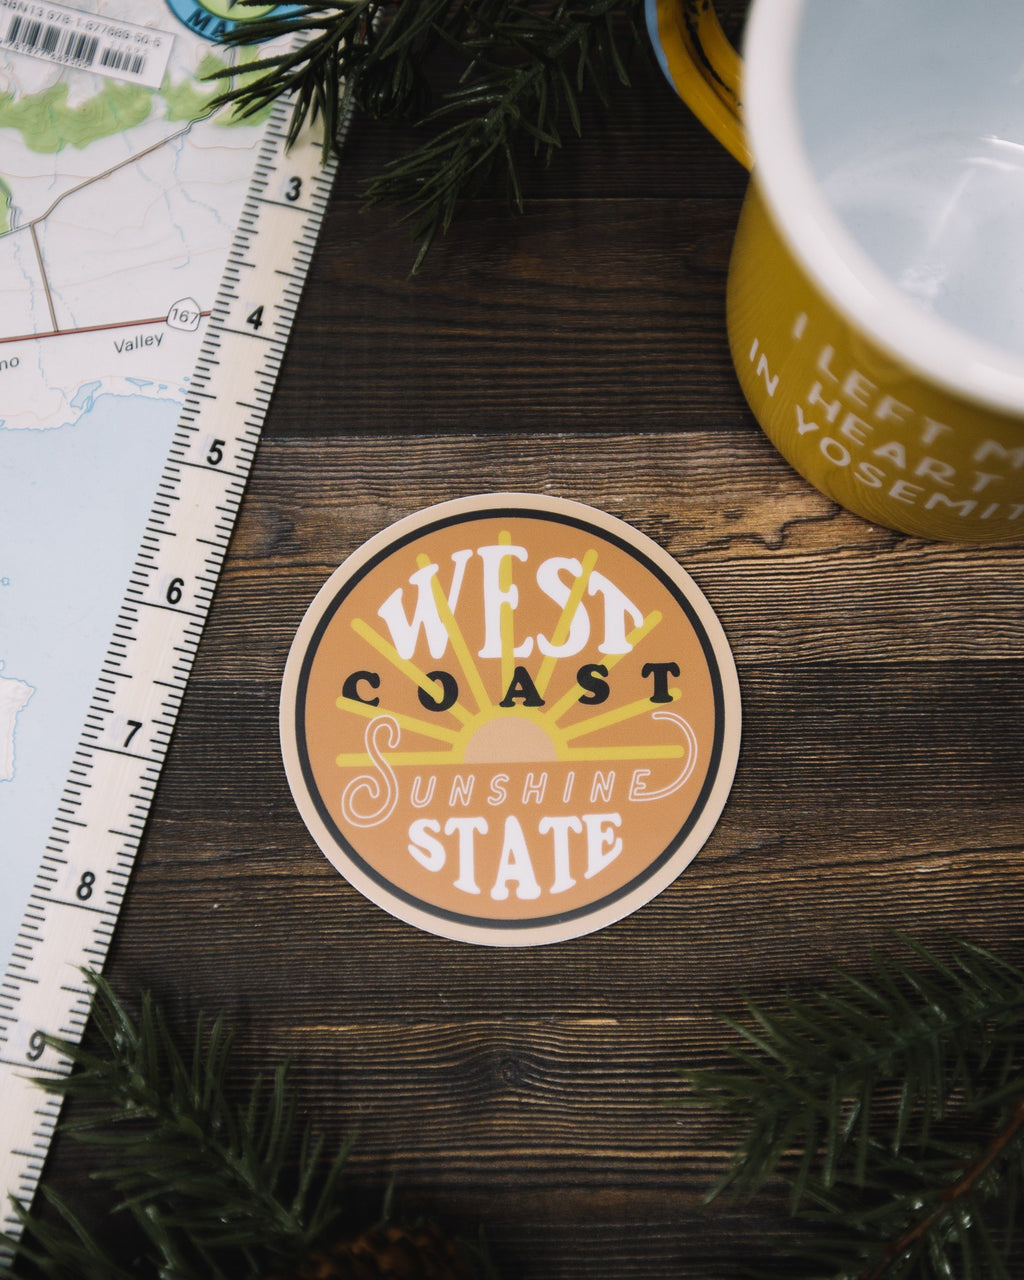 The Parks Regions: West Coast Sticker - The Parks Apparel